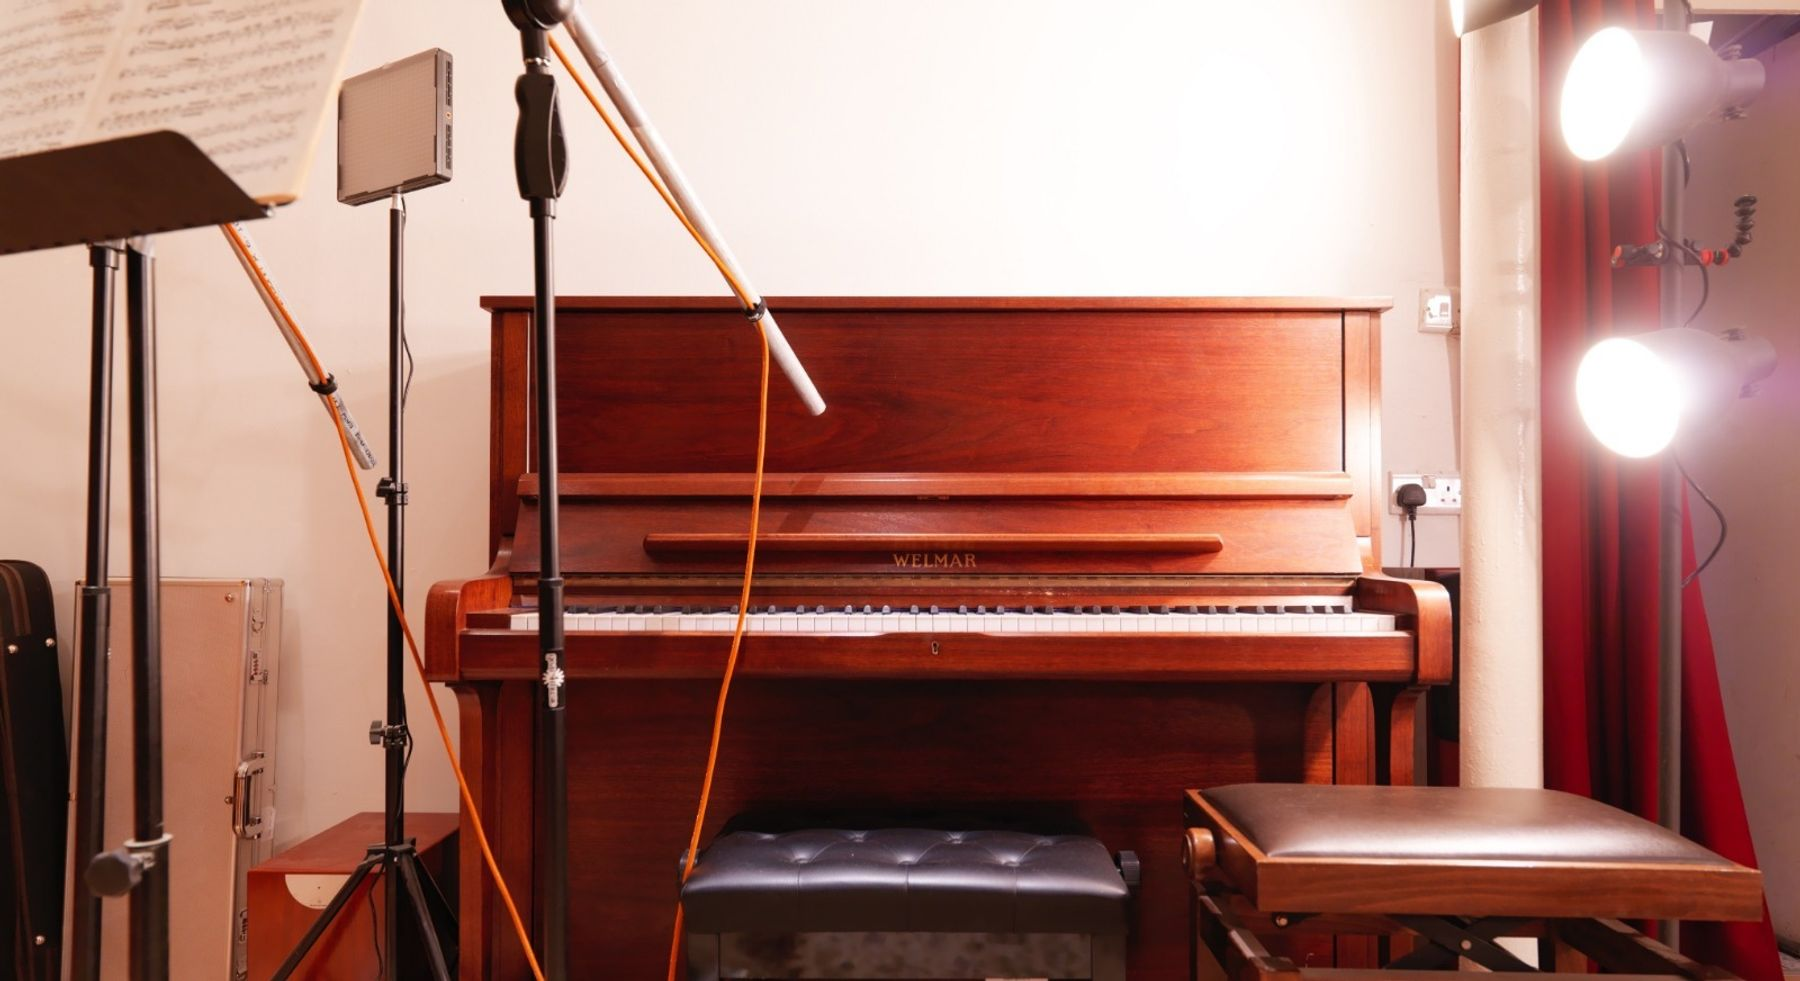 Rehearsal space with piano